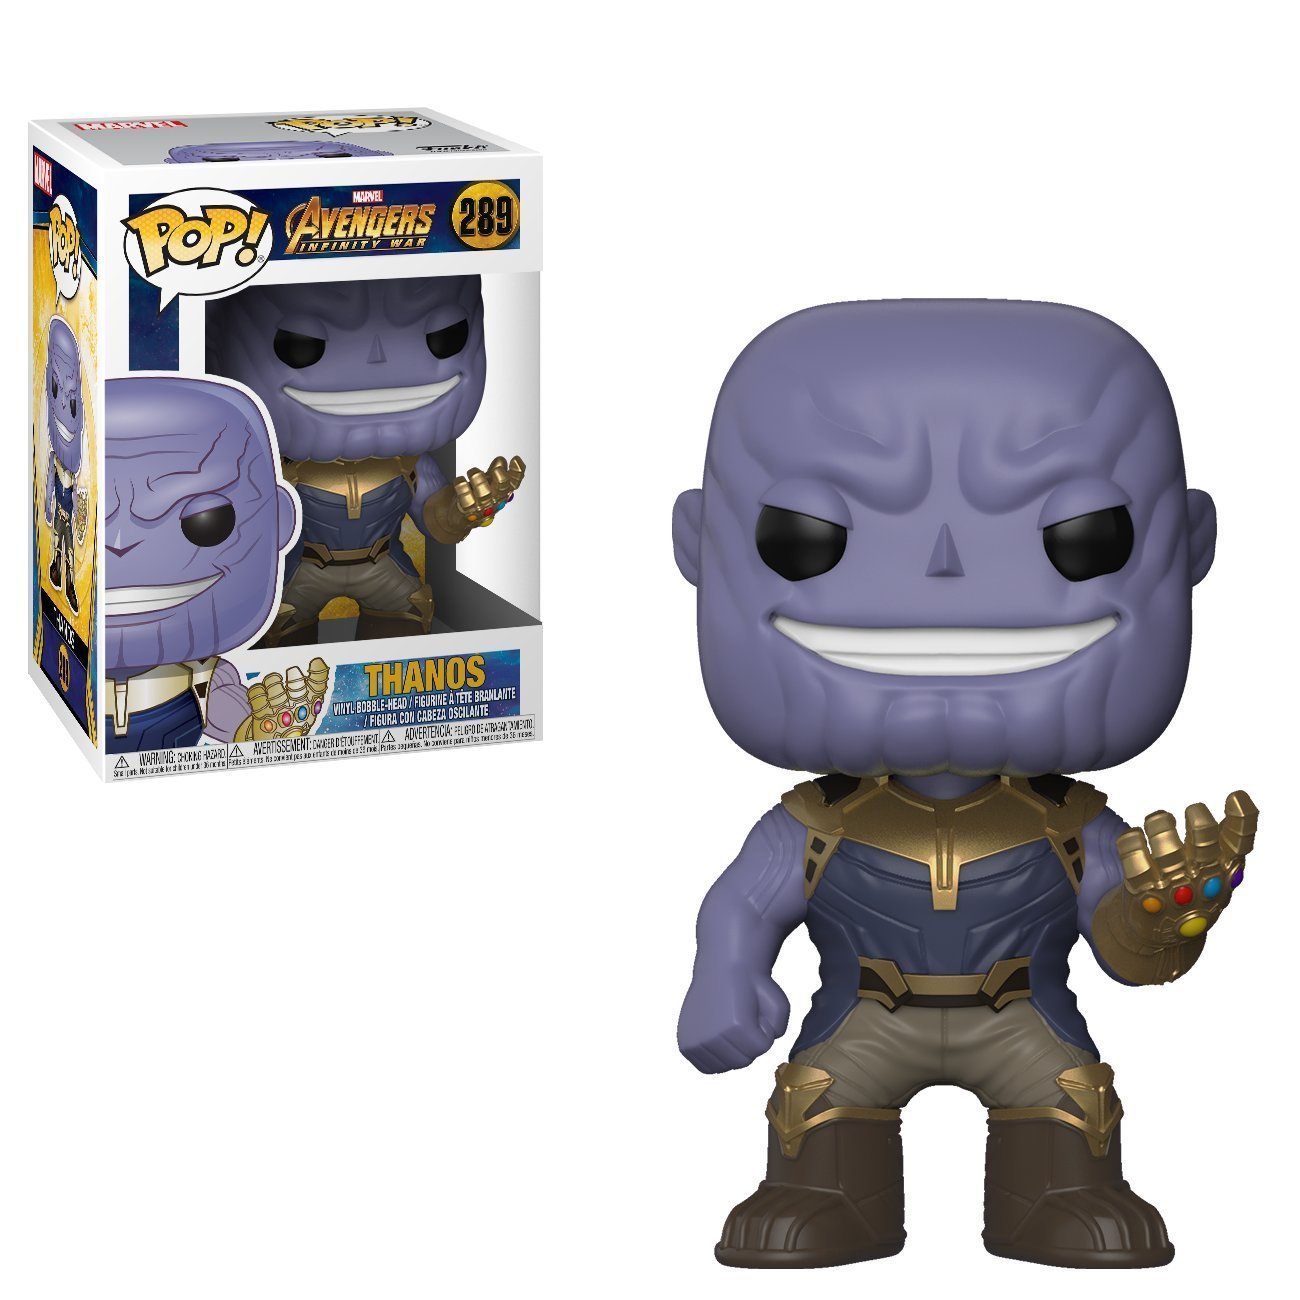 Funko Pop Marvel Avengers Infinity War Thanos Vinyl Action Figure